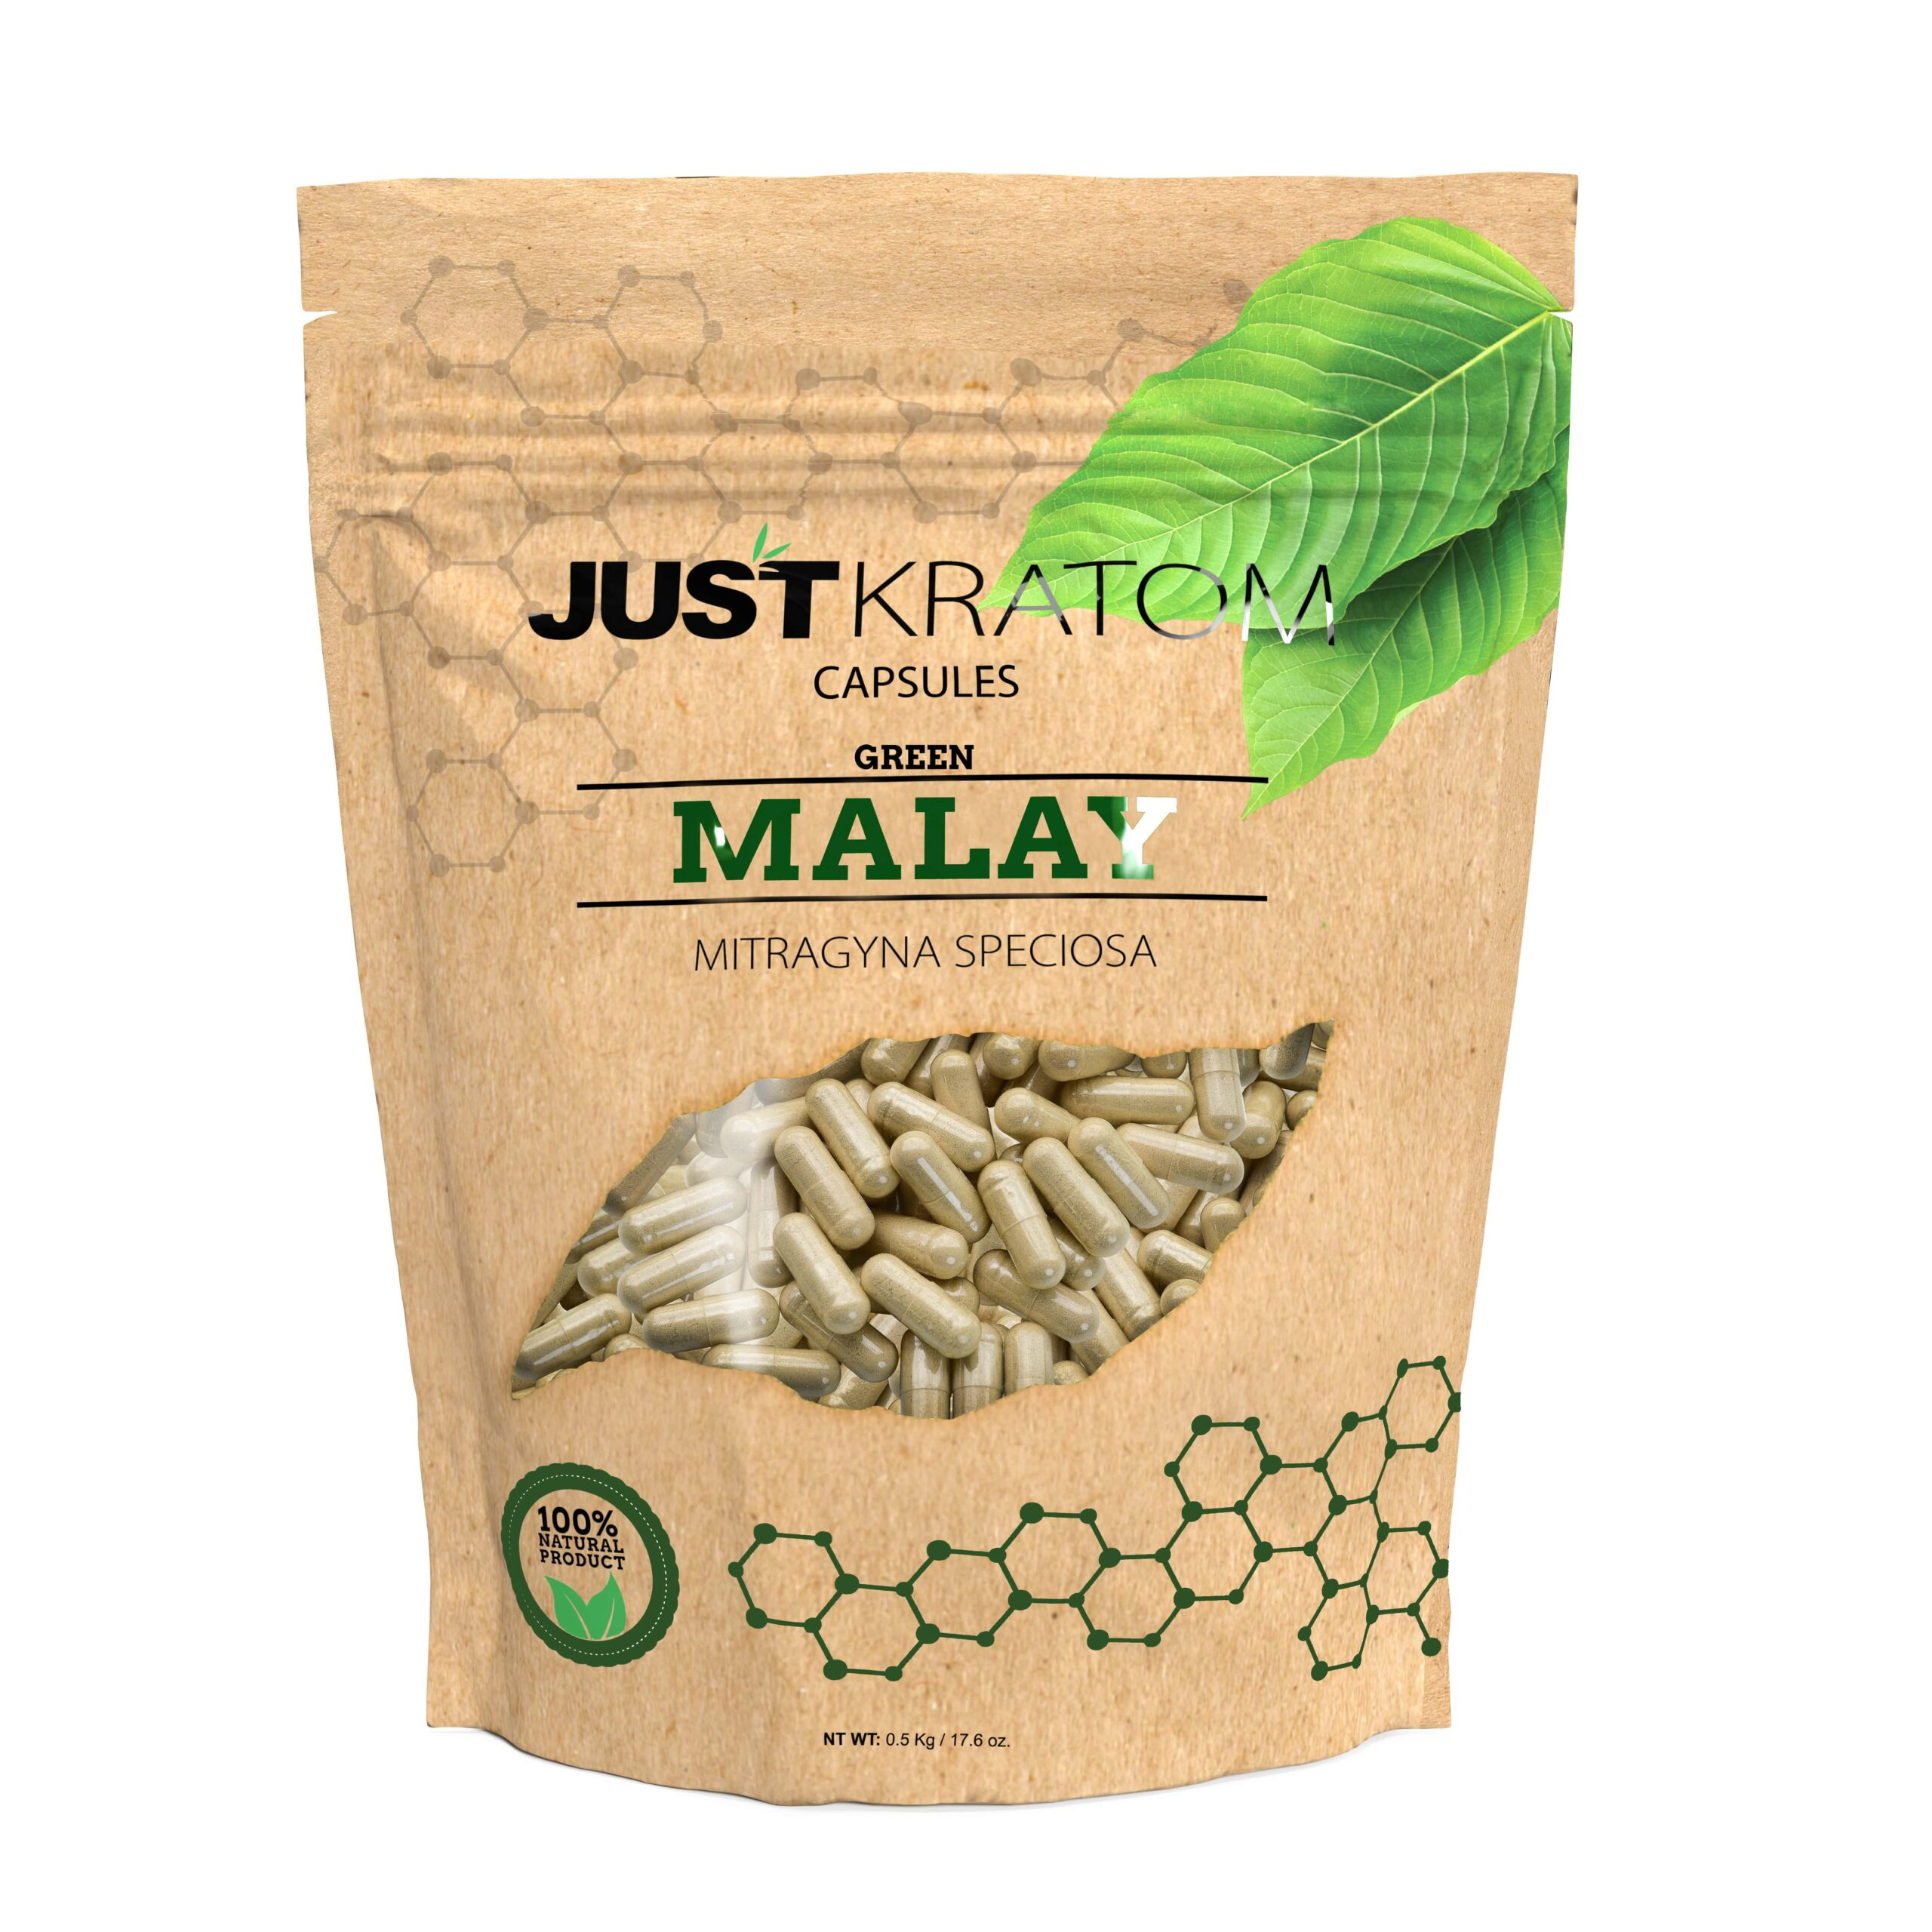 Where Can I Buy Kratom Online